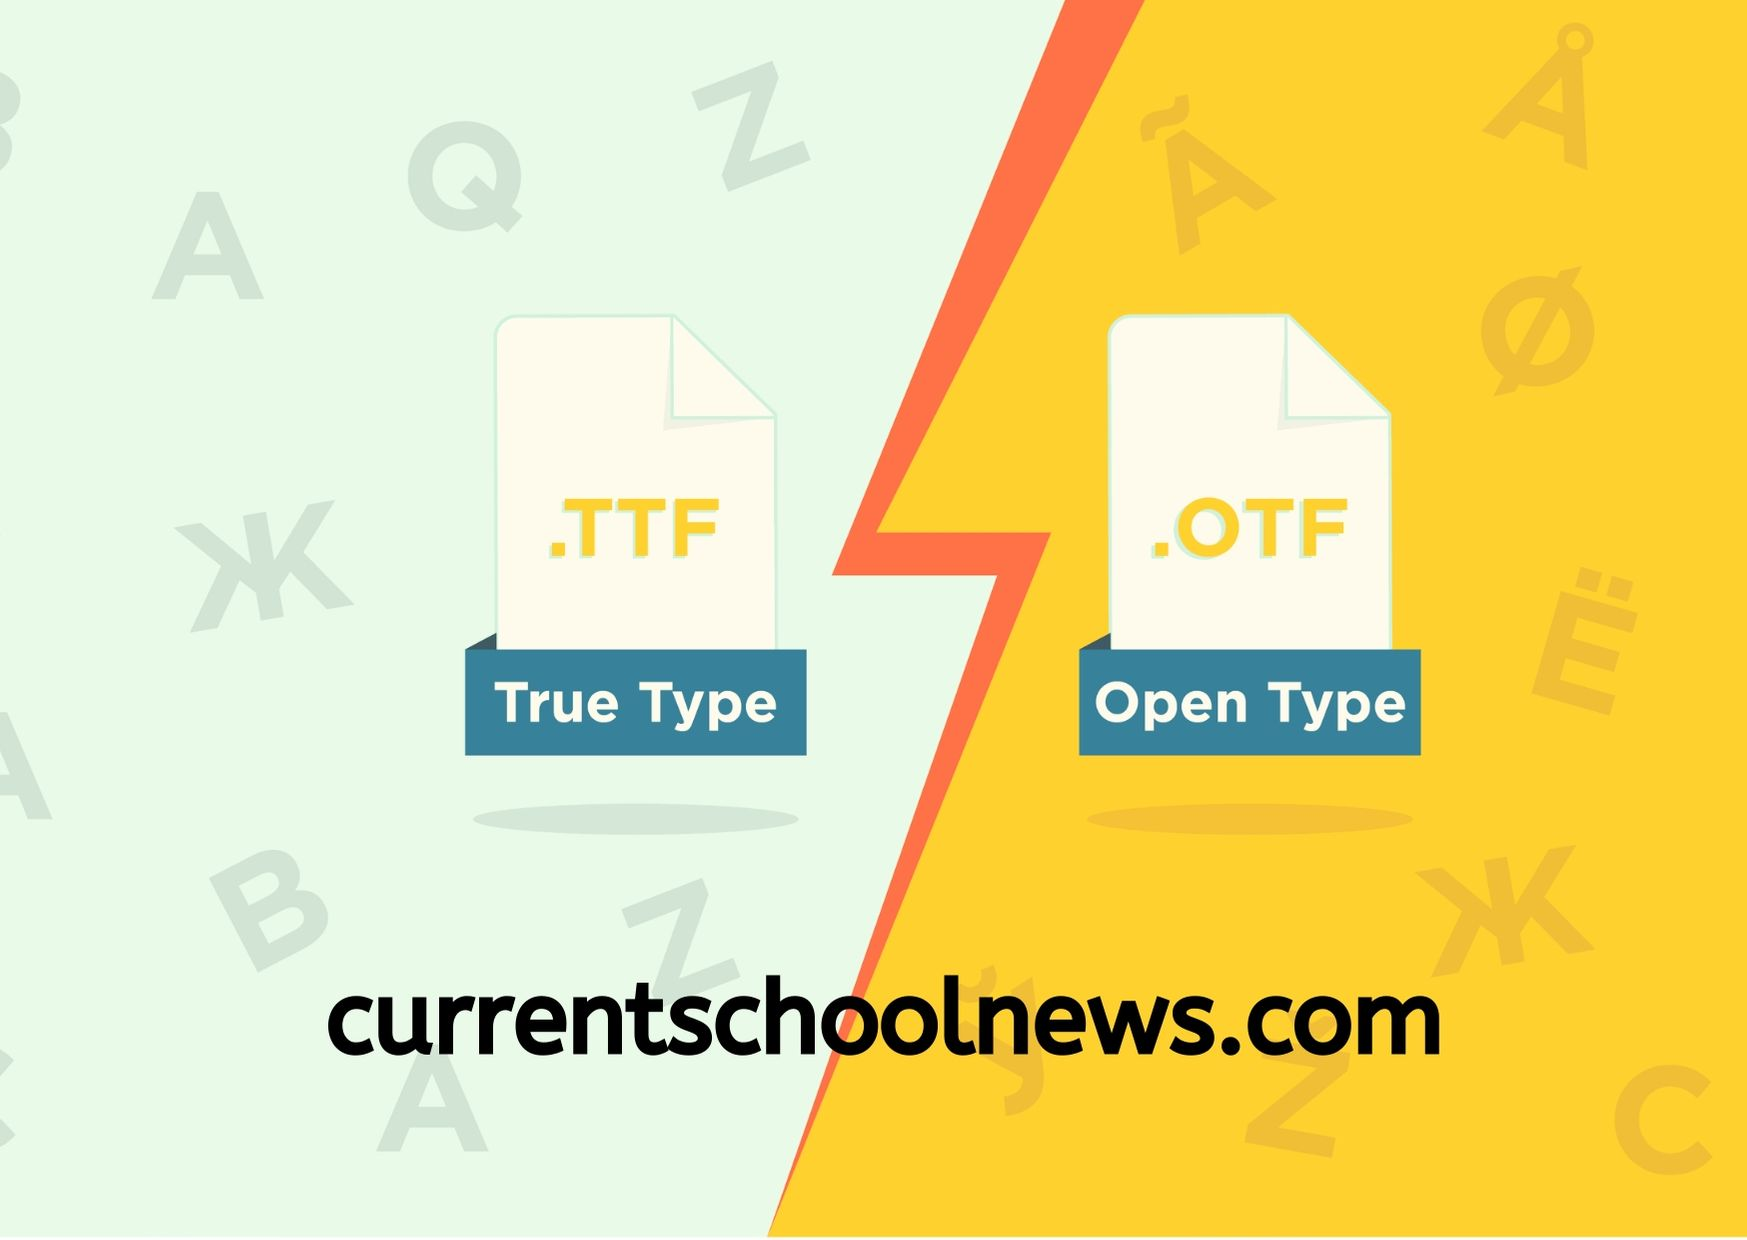 10 Major Differences Between TTF and OTF You Should Know